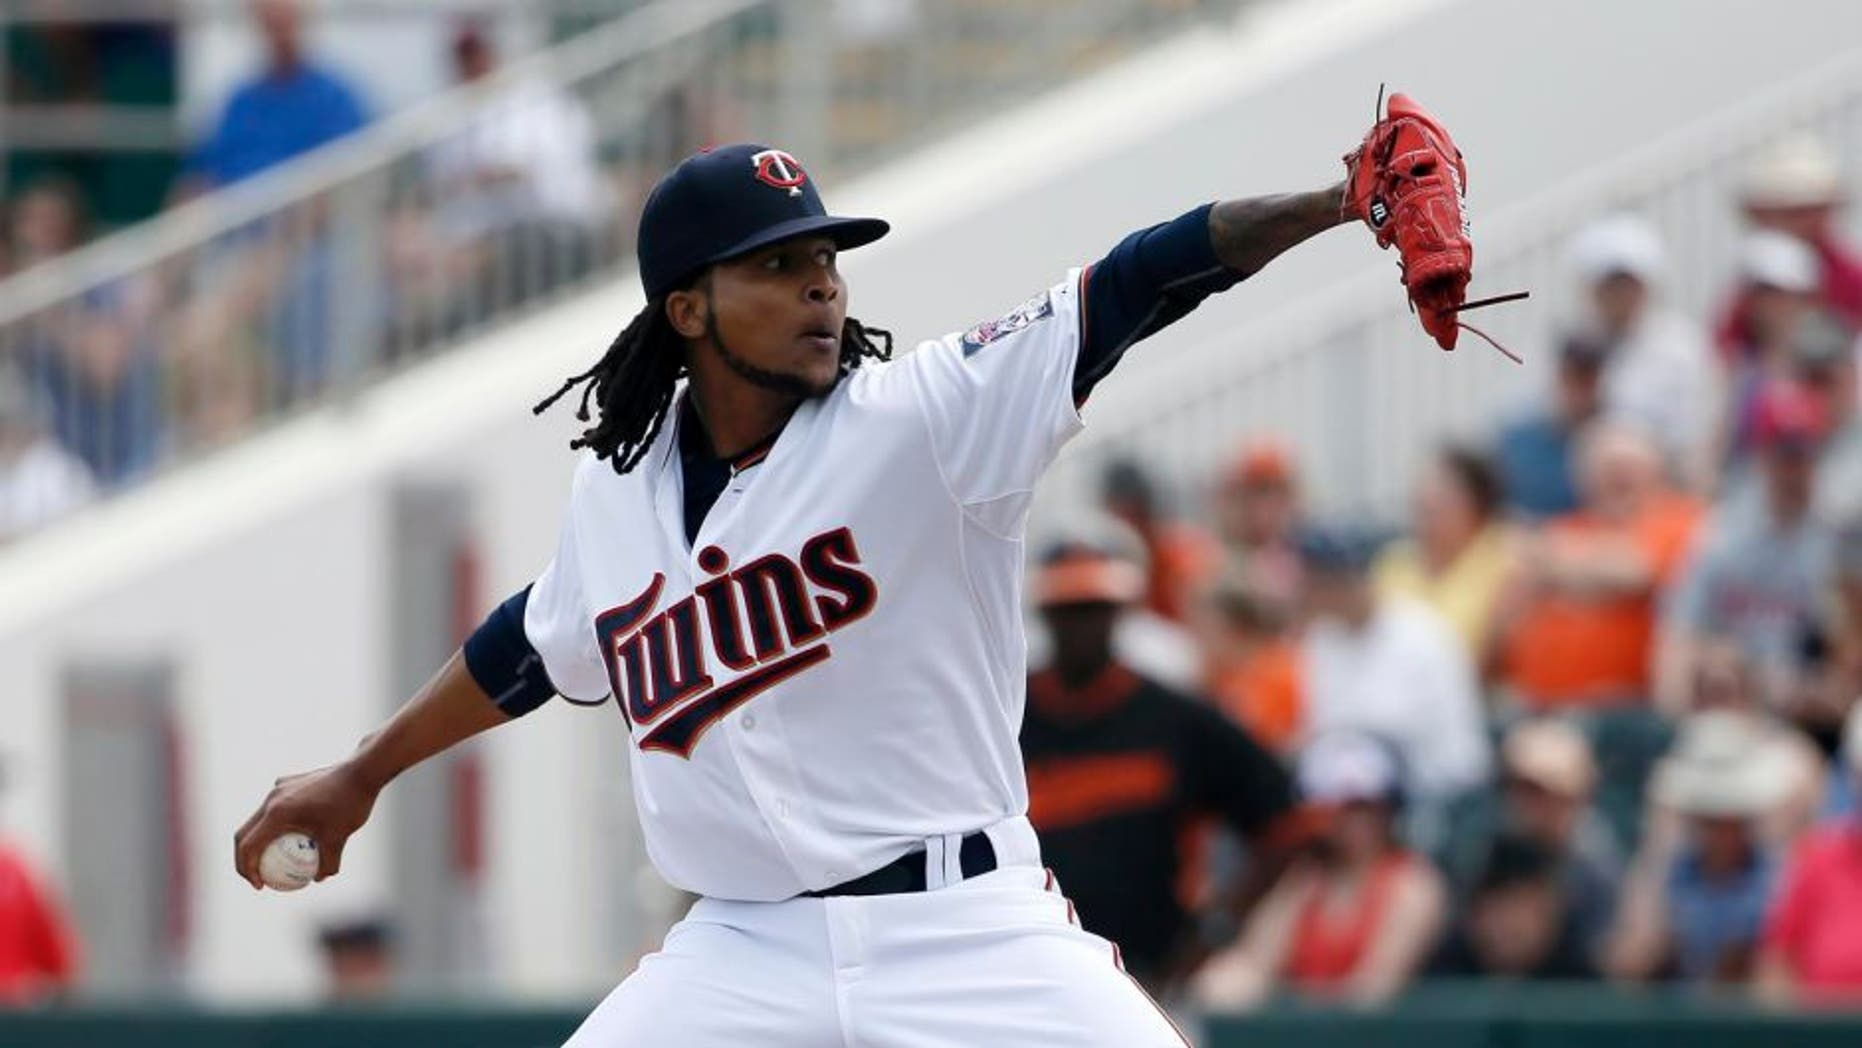 The Minnesota Twins' Ervin Santana works against the Baltimore Orioles in the first inning of a spring training game in Fort Myers, Fla., Sunday, March 8, 2015.